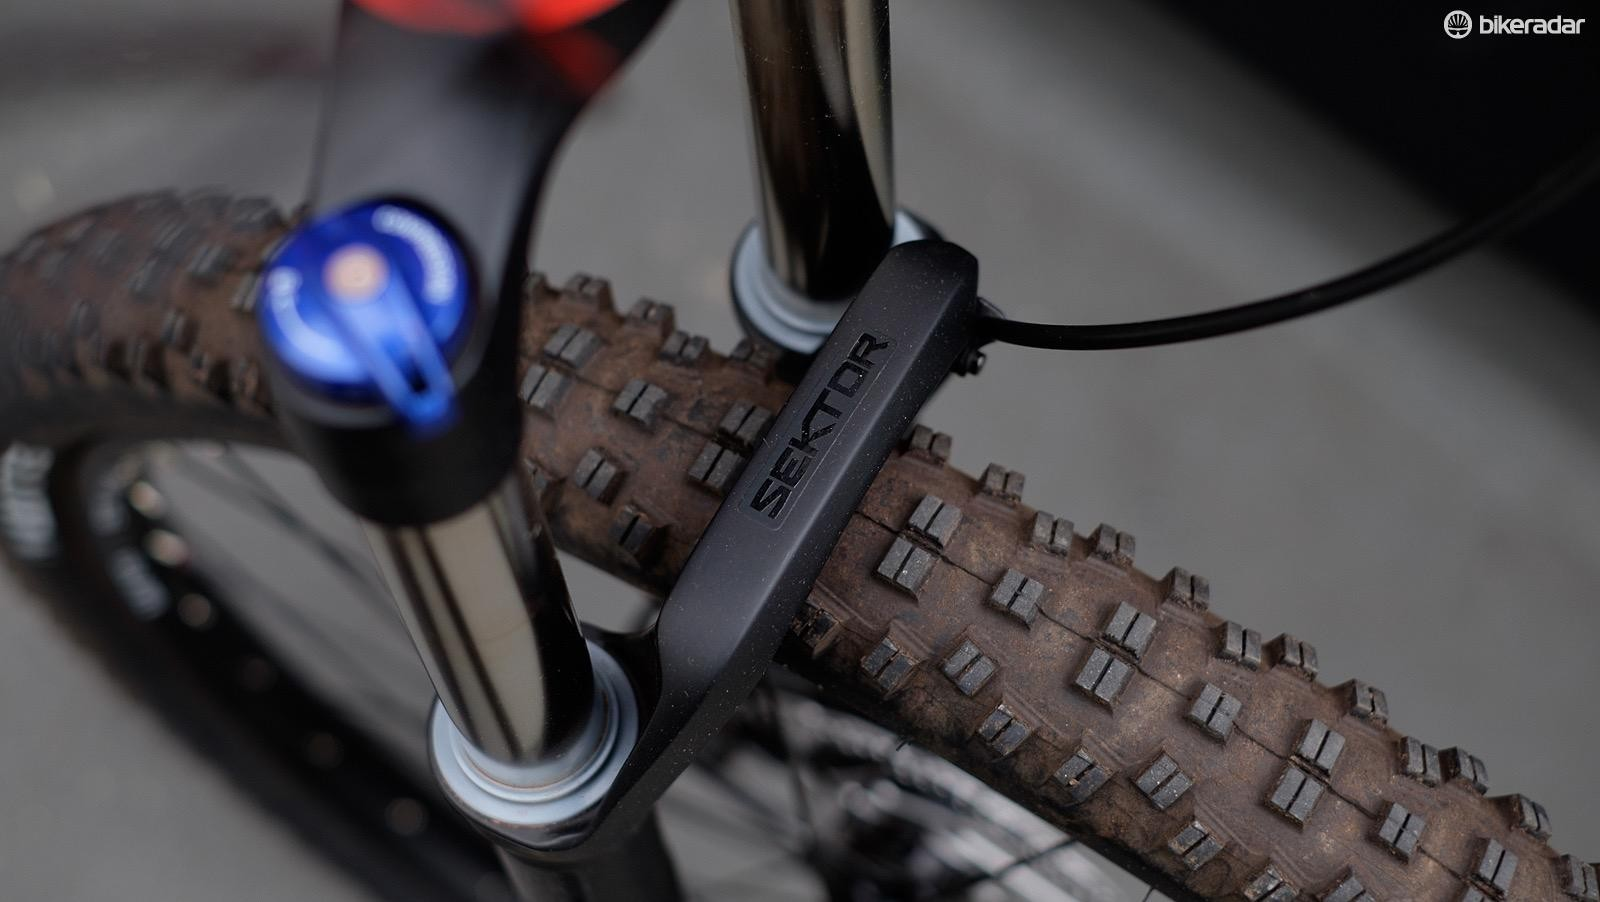 The air-sprung RockShox Sektor fork is simple to set up and adjust for different rider weights